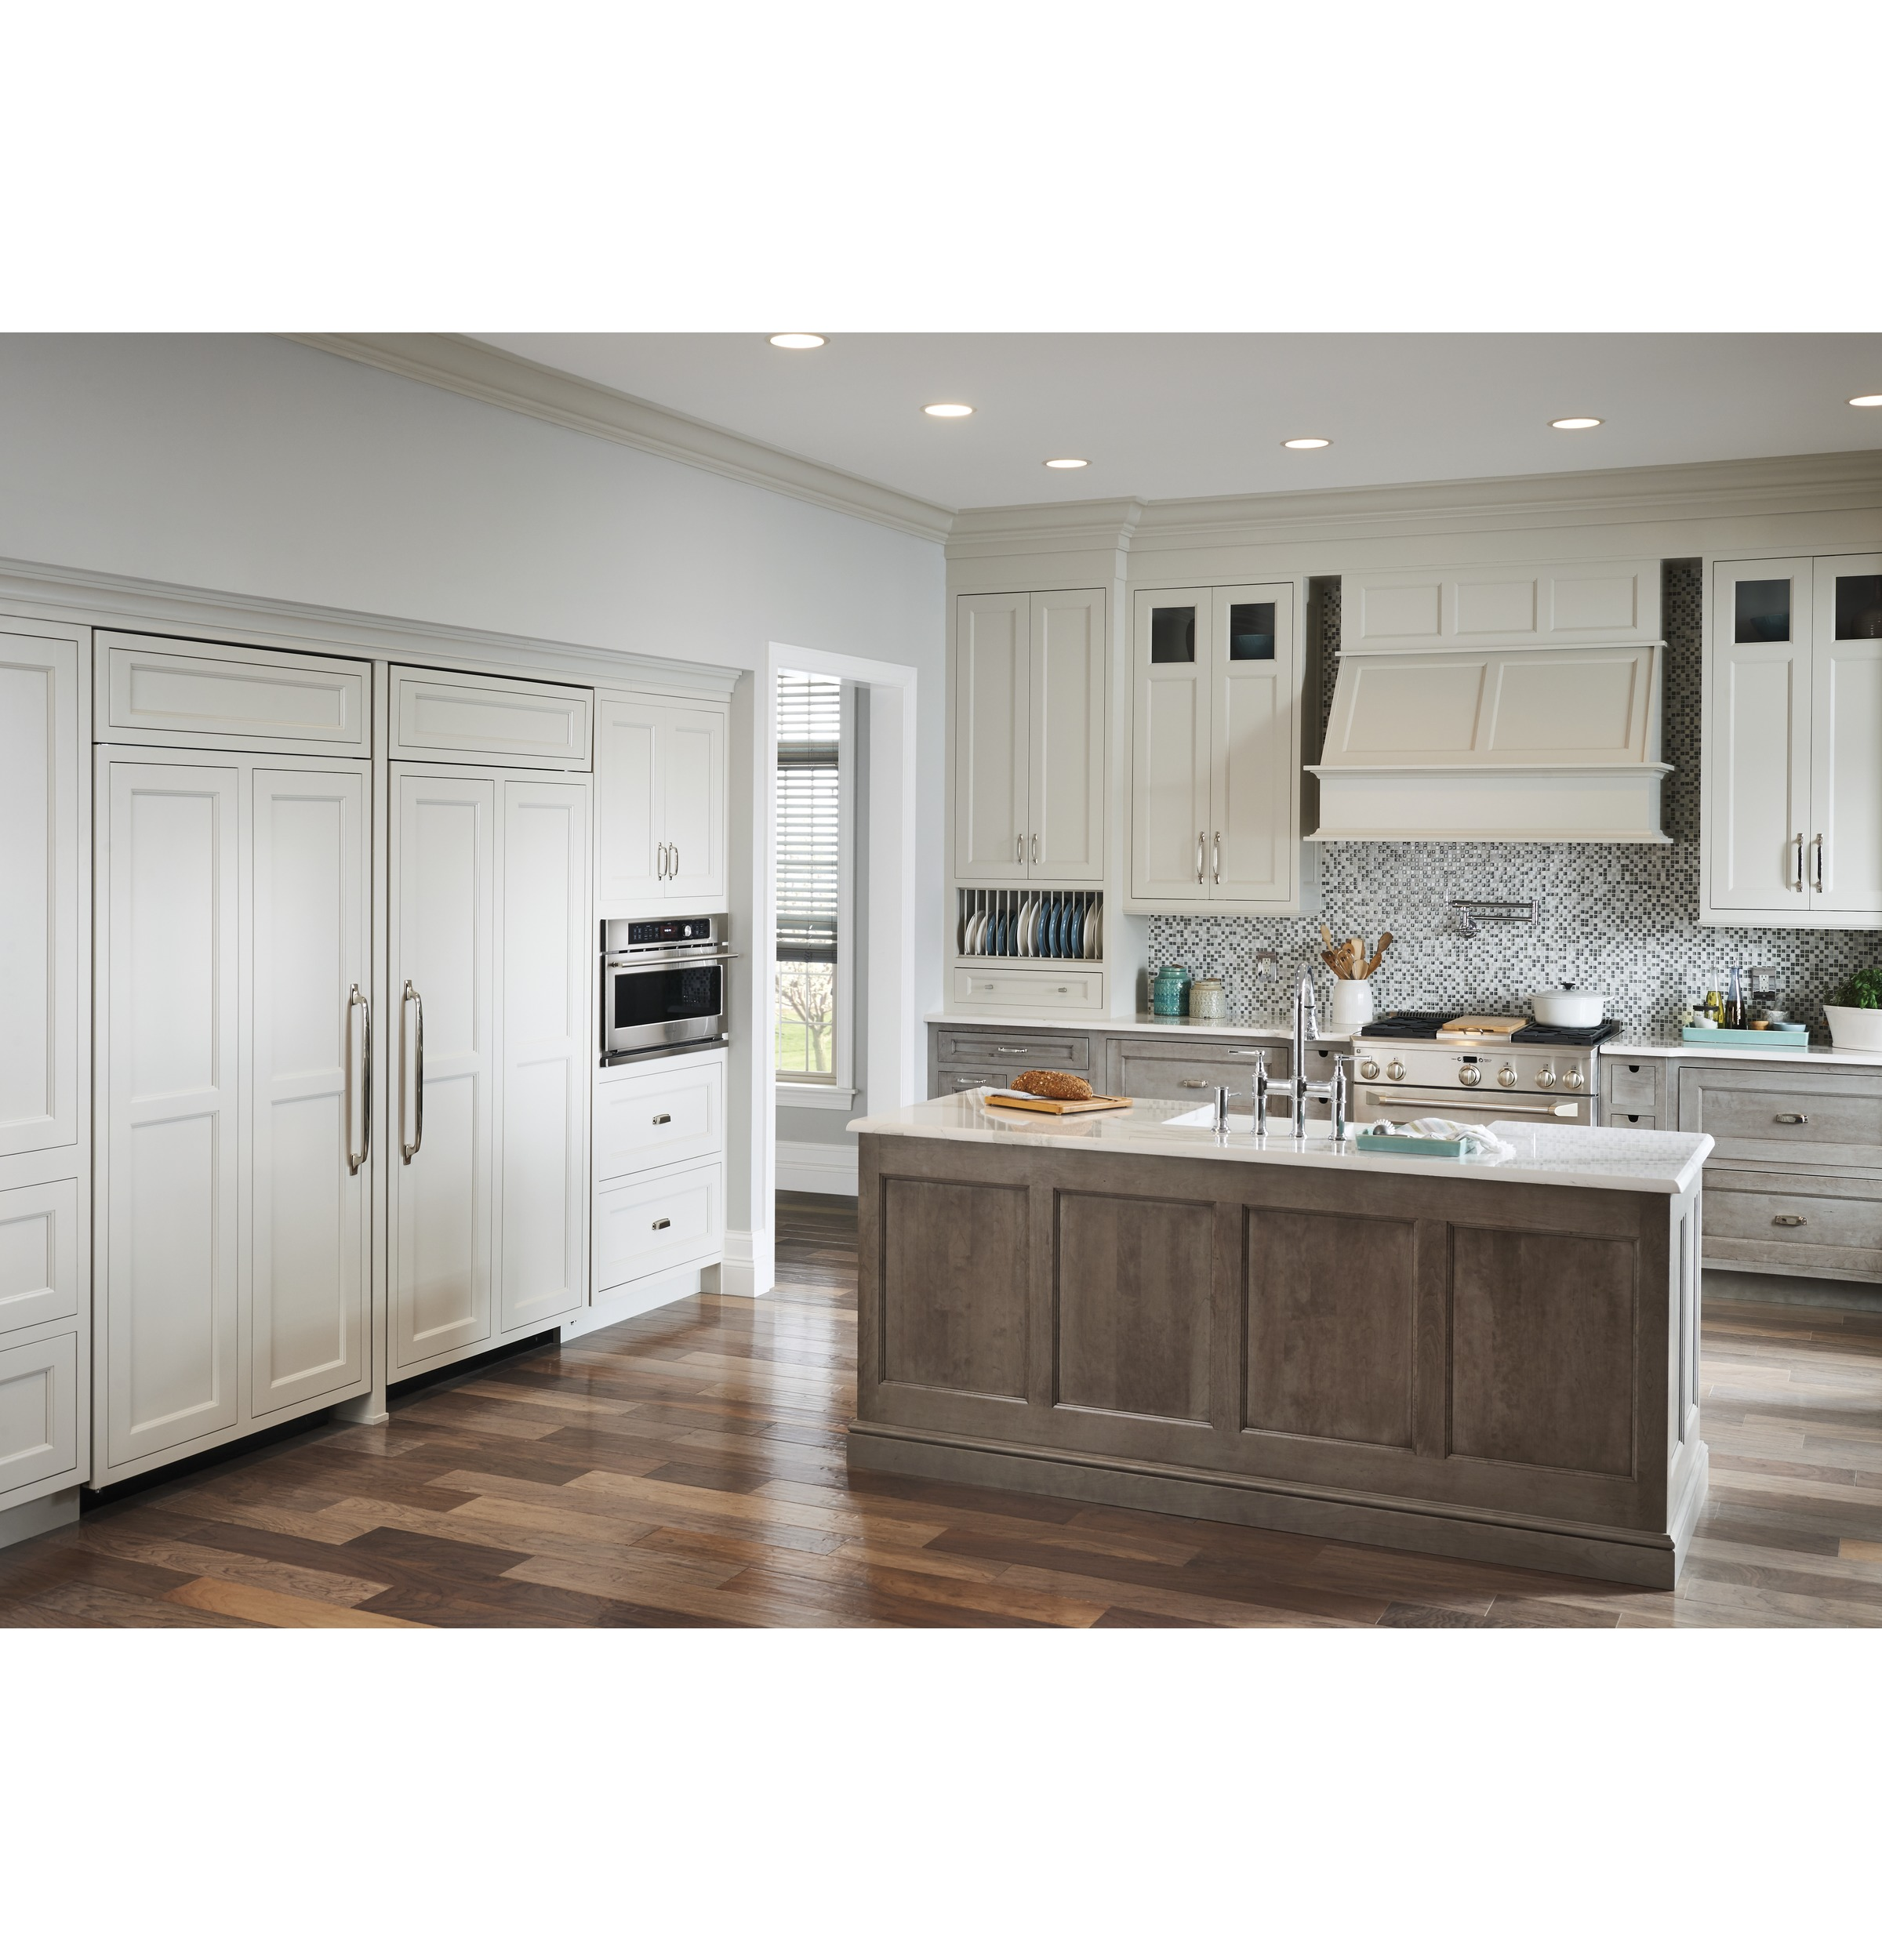 """Model: ZDP364NDPSS   Monogram Monogram 36"""" Dual-Fuel Professional Range with 4 Burners and Griddle (Natural Gas)"""